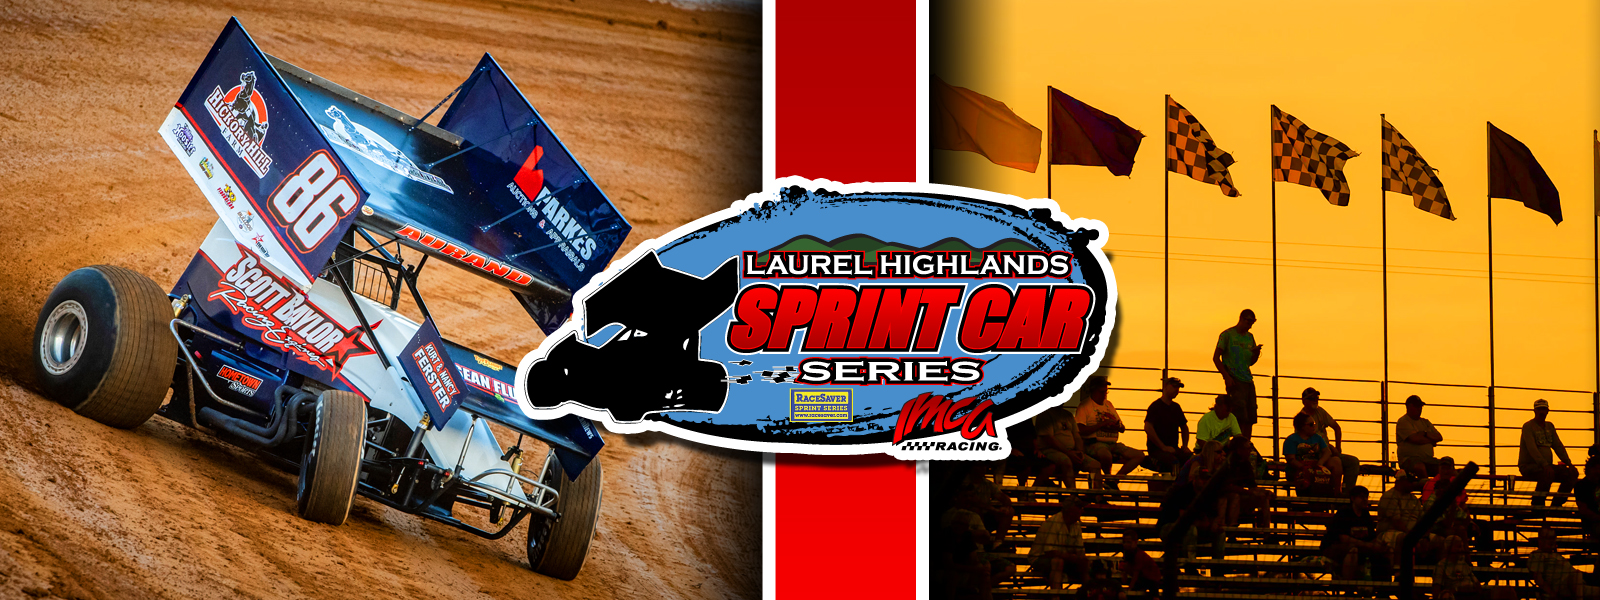 Laurel Highlands Sprint Series